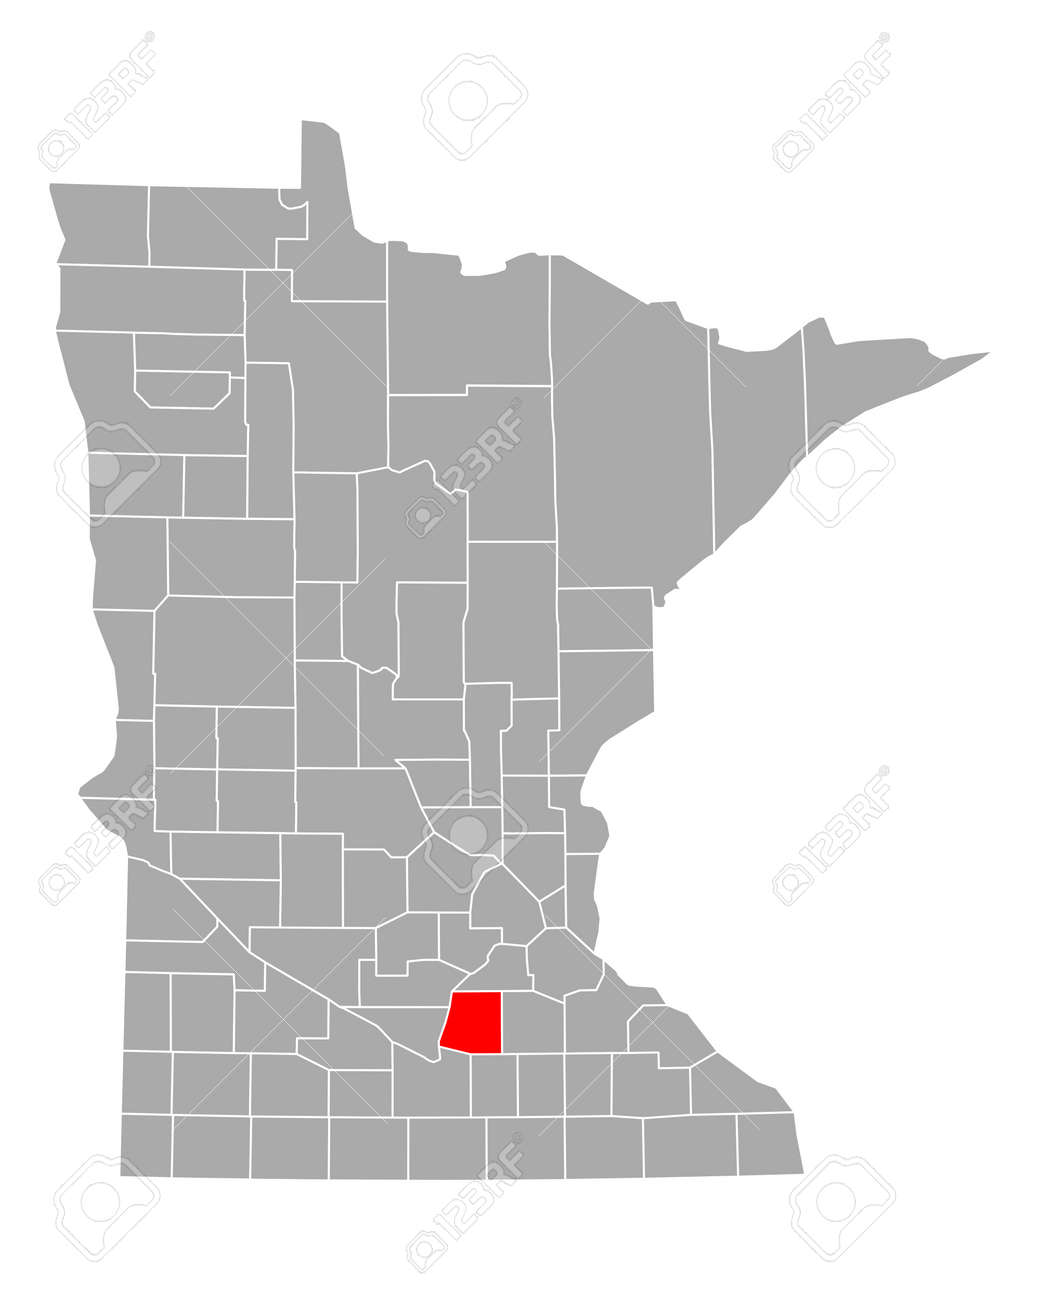 Map of Le Sueur in Minnesota - 150965664